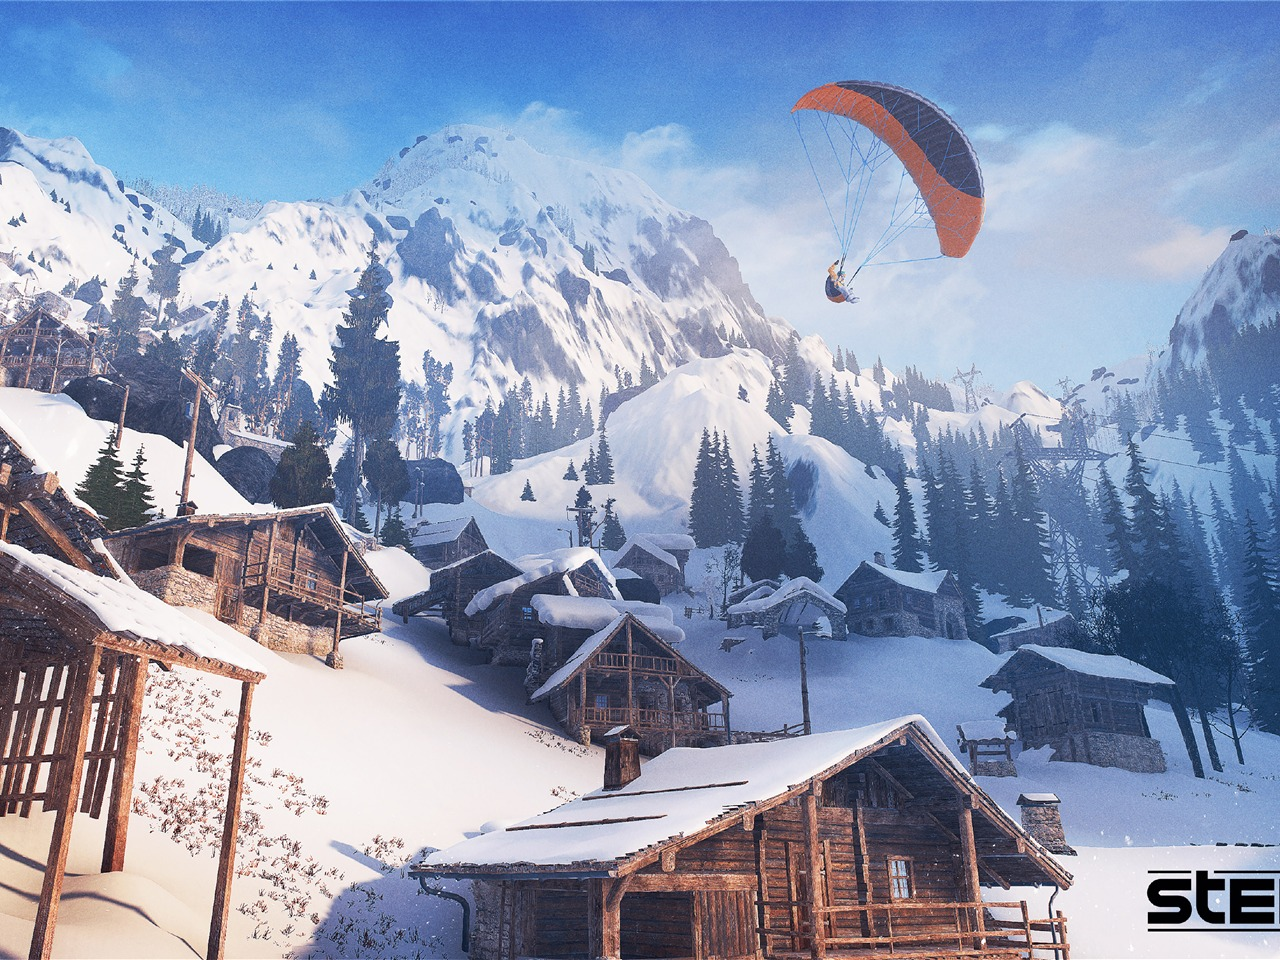 Steep Game 4K Ultra HD - 1280x960 wallpaper download